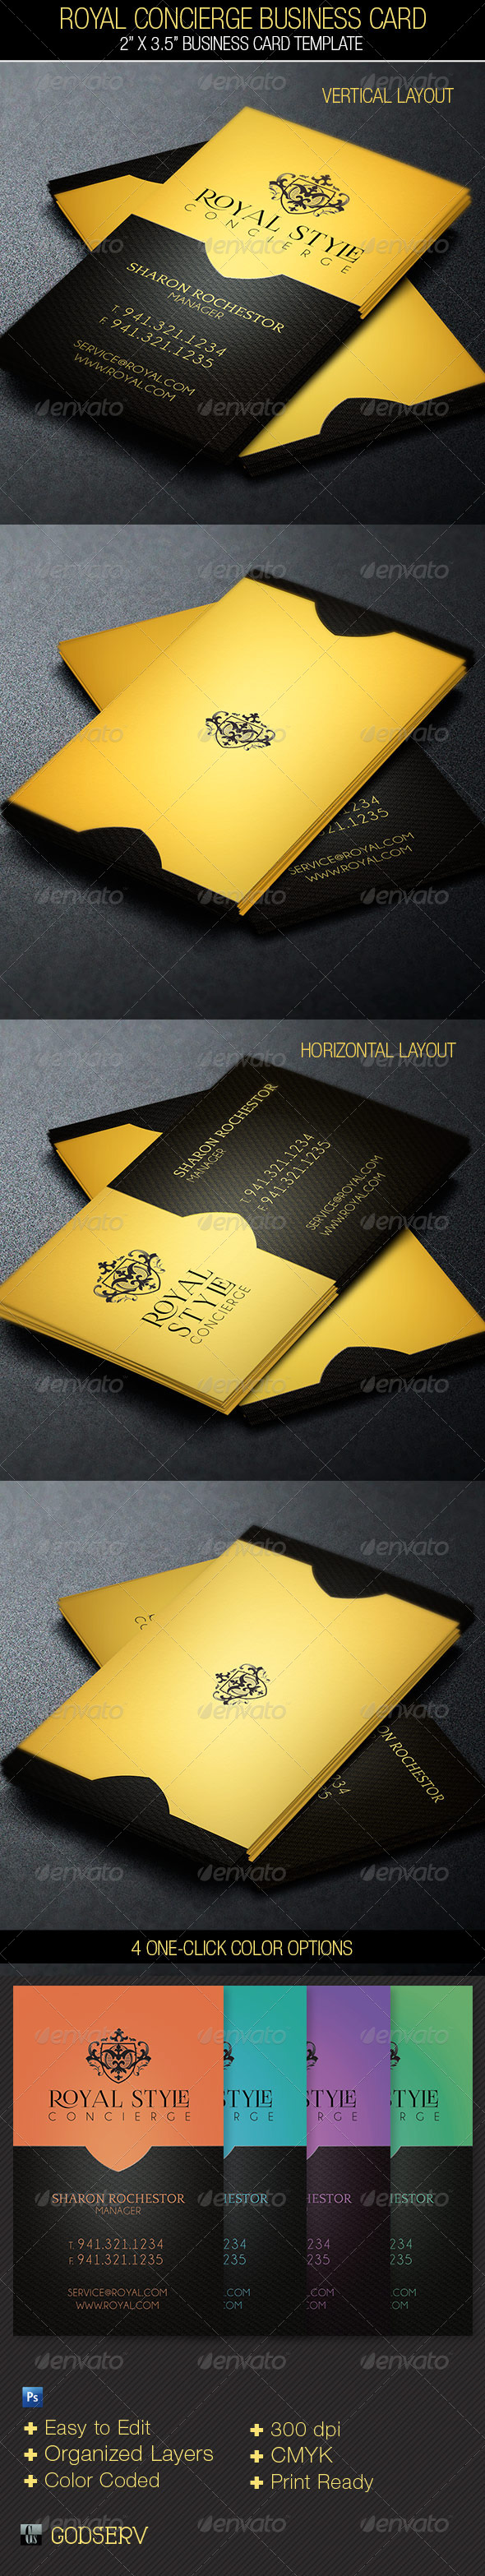 Modern Vertical Business Cards Royal concierge business card